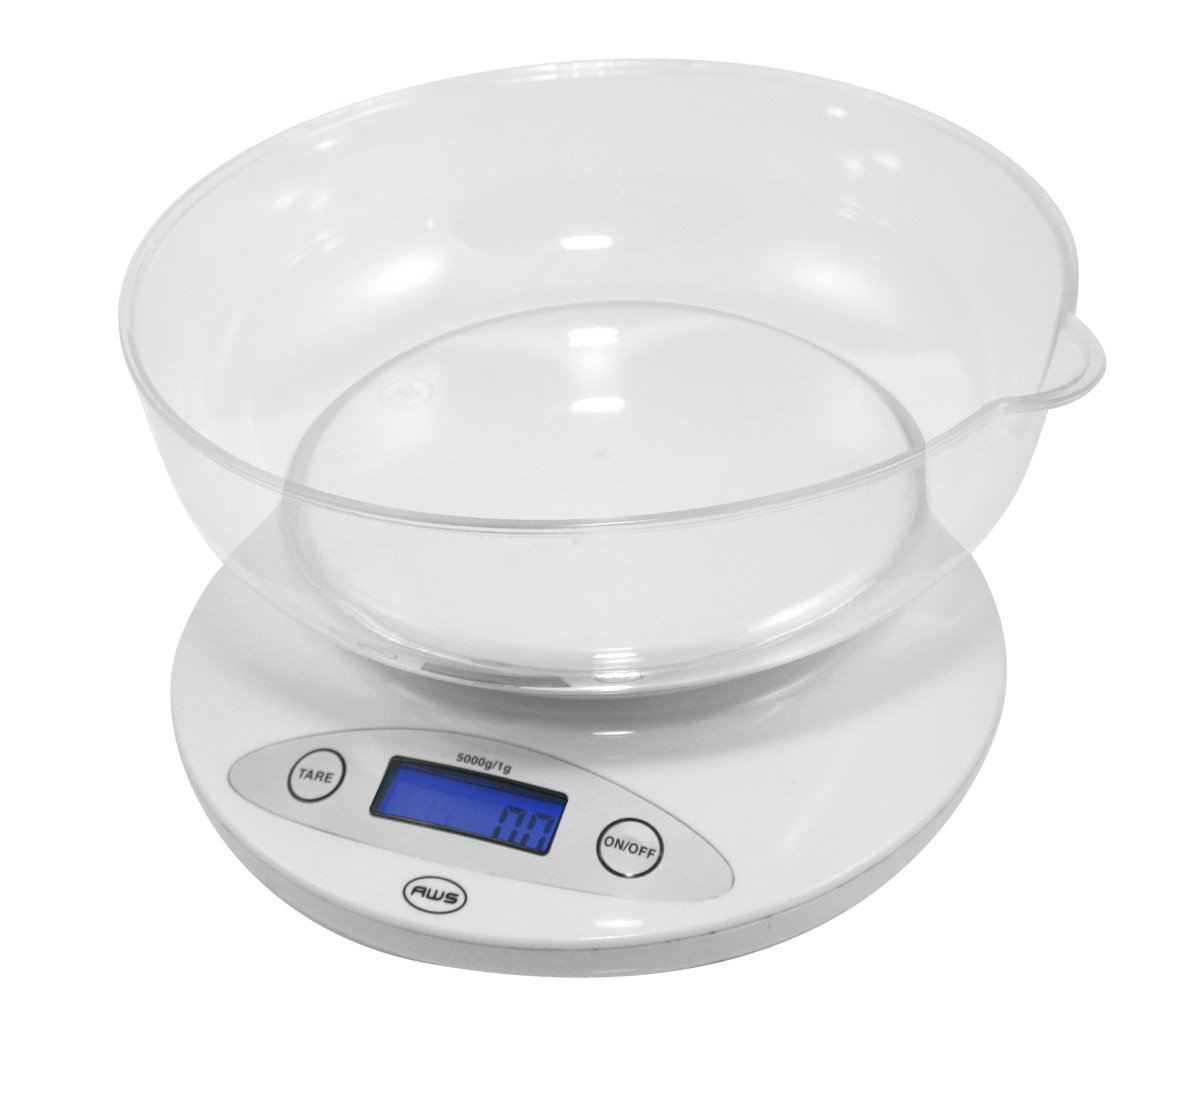 Amazon.com: American Weigh Scales 5KBOWL 5KG Digital Kitchen Scale With  Removable Bowl, White: Scale Amazon: Kitchen U0026 Dining